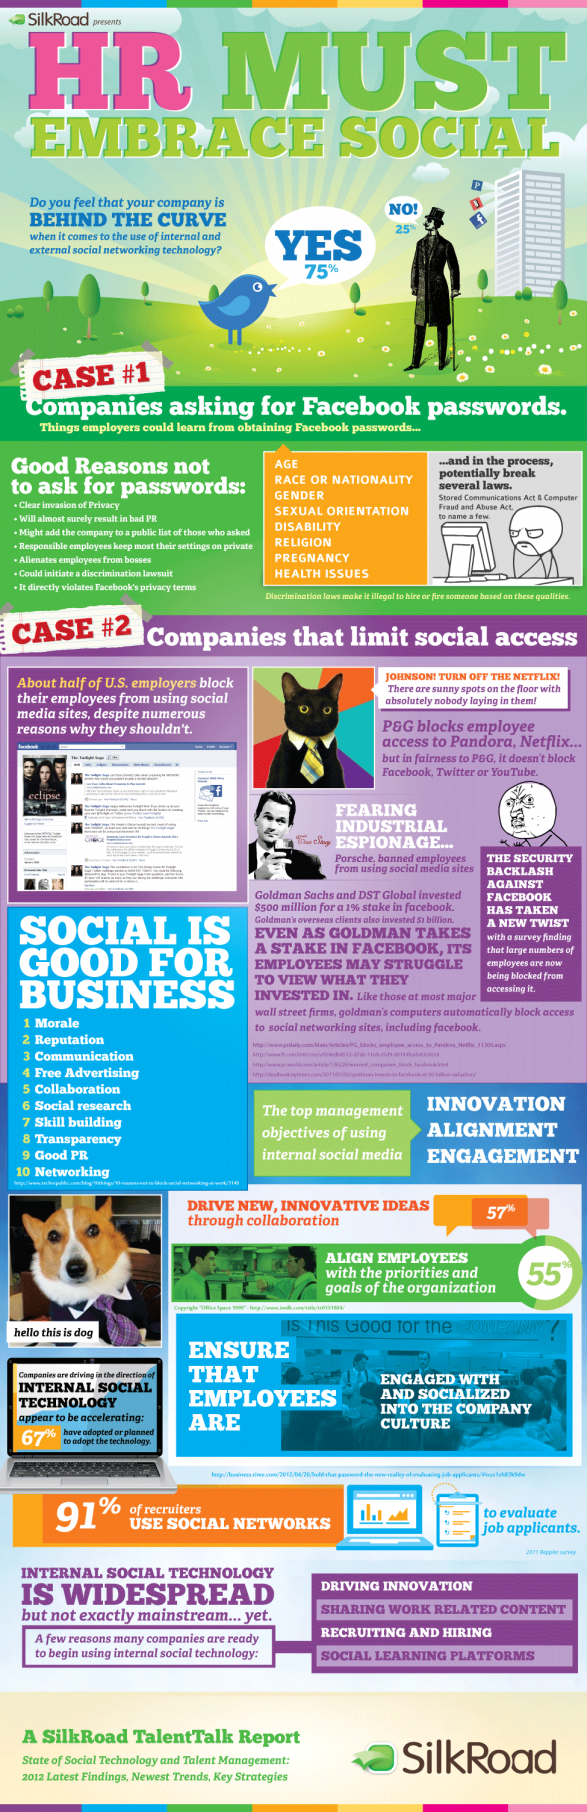 Embracing Social Technology: A Call to Action